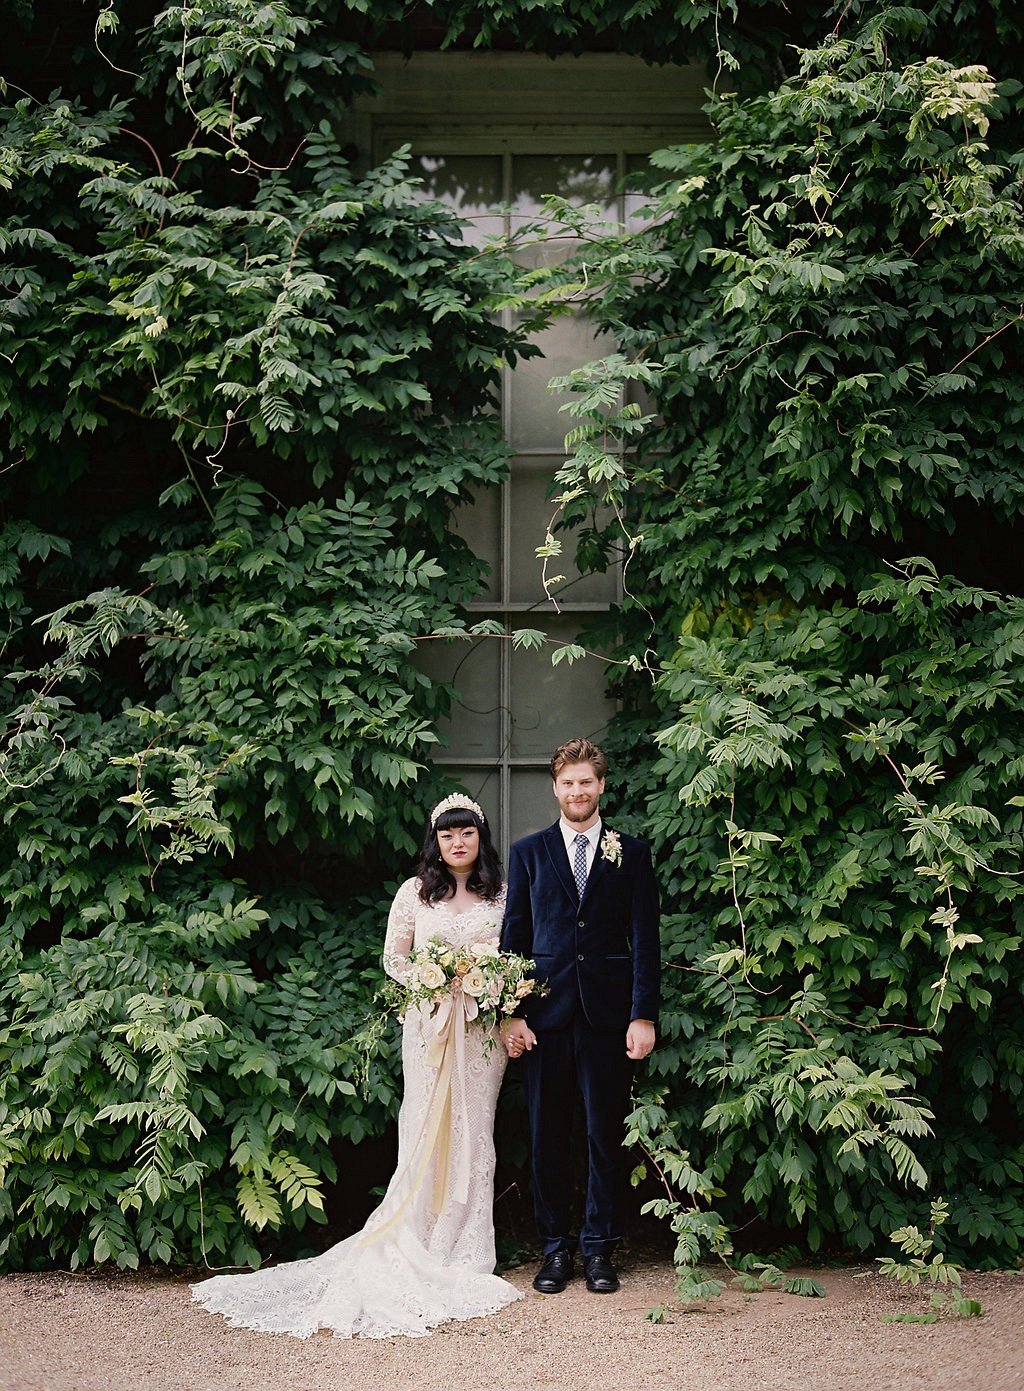 Audrey and Zak's Chinese, English Fusion Wedding